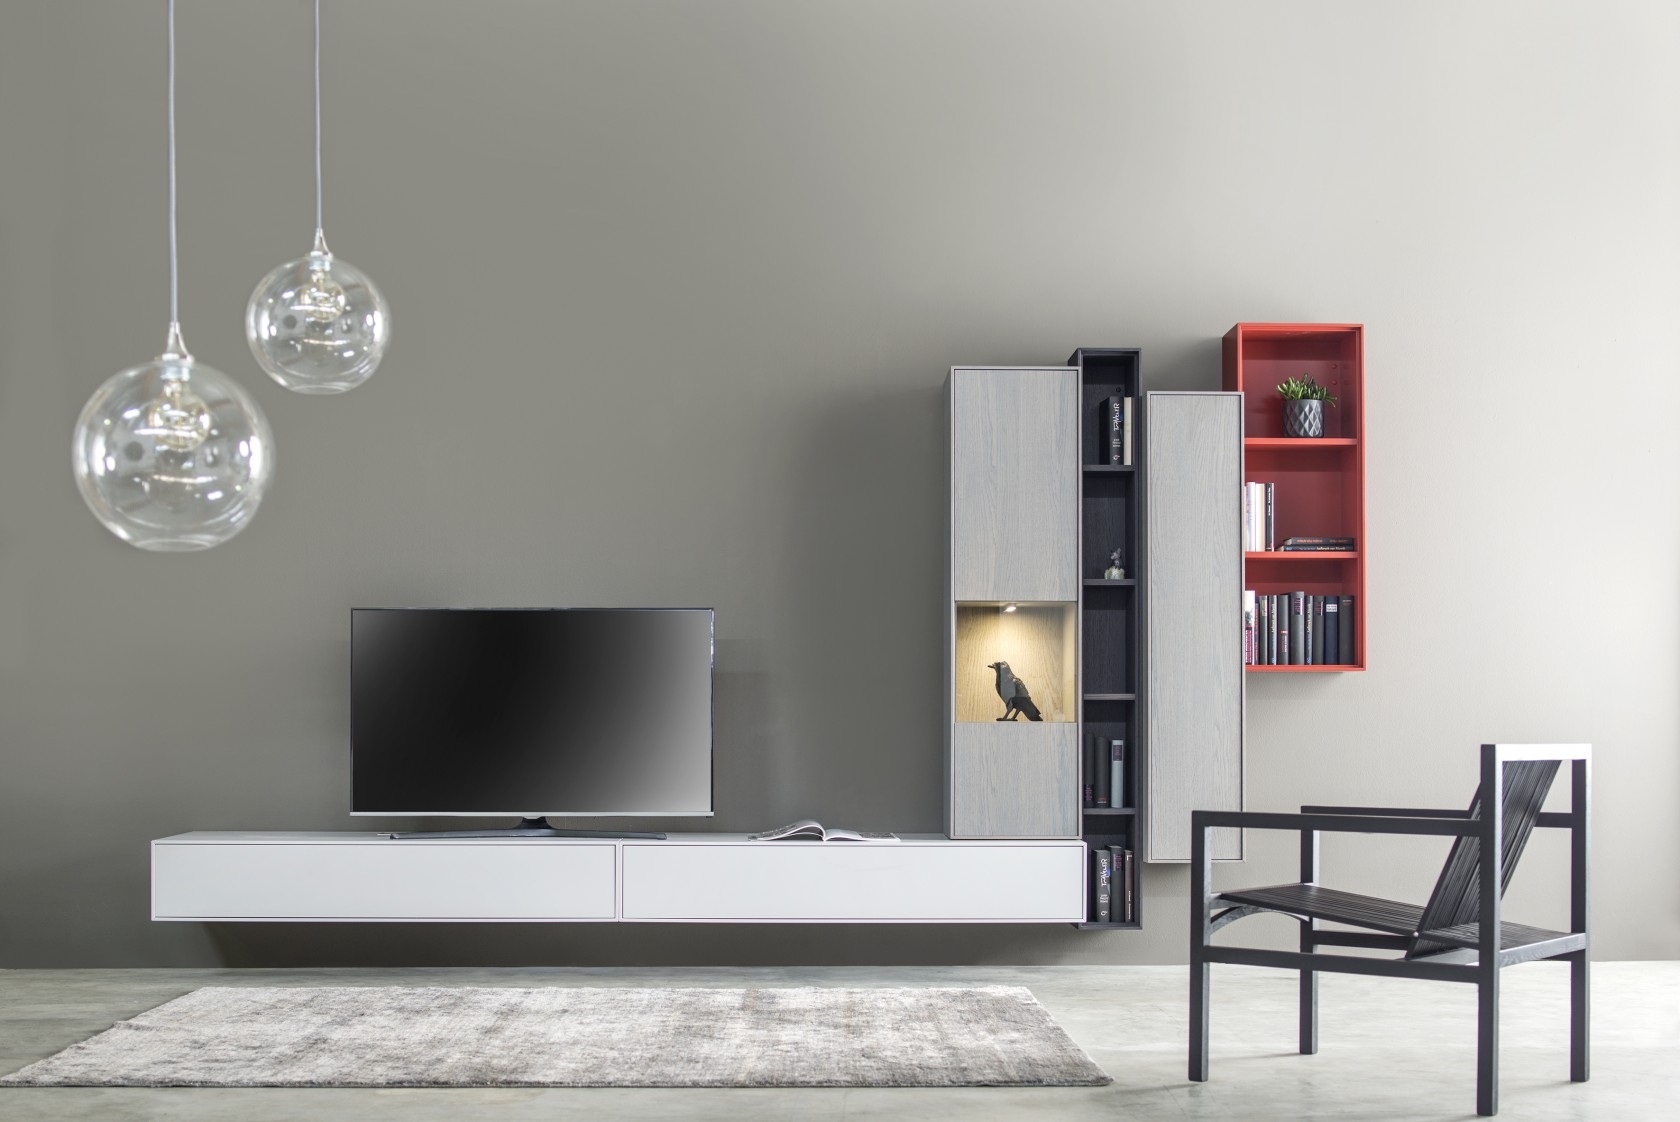 m bel k chen nordhorn m bel nordhorn m bel faber. Black Bedroom Furniture Sets. Home Design Ideas